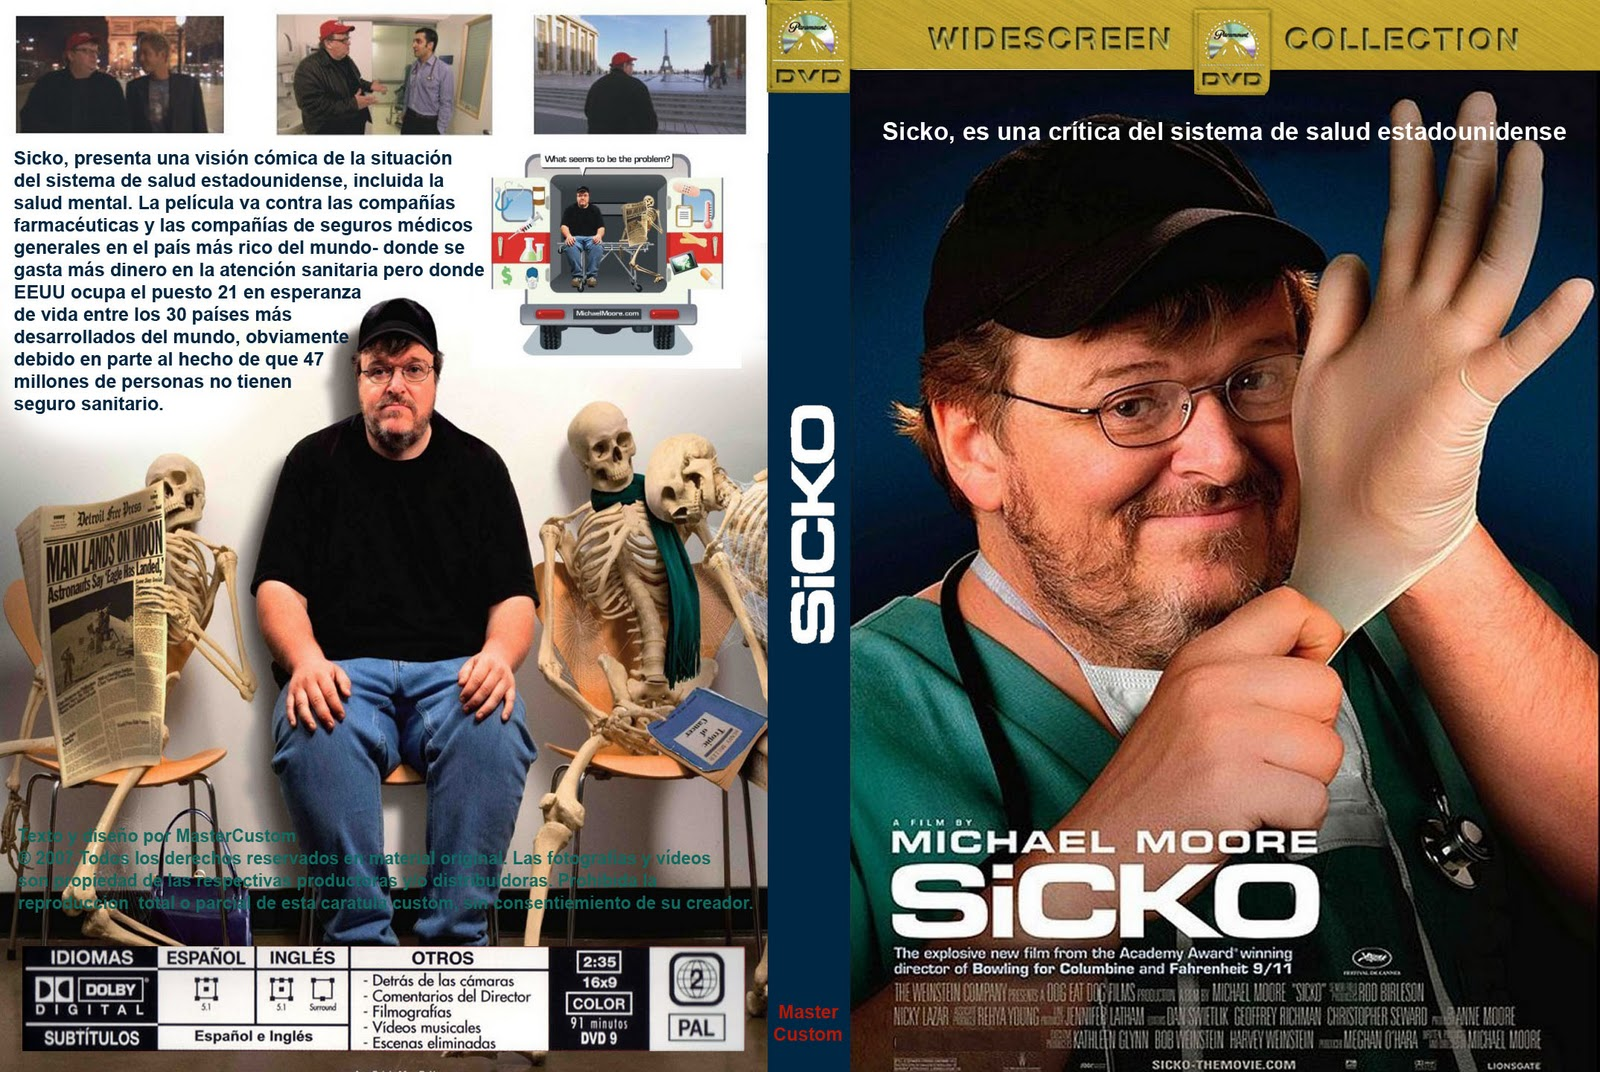 sicko review essay Sicko by michael moore: a critical analysis  the film sicko deals with the ailing  health care system in america, which is widely believed to be the most inefficient  among  a collection of high-quality academic essays about.